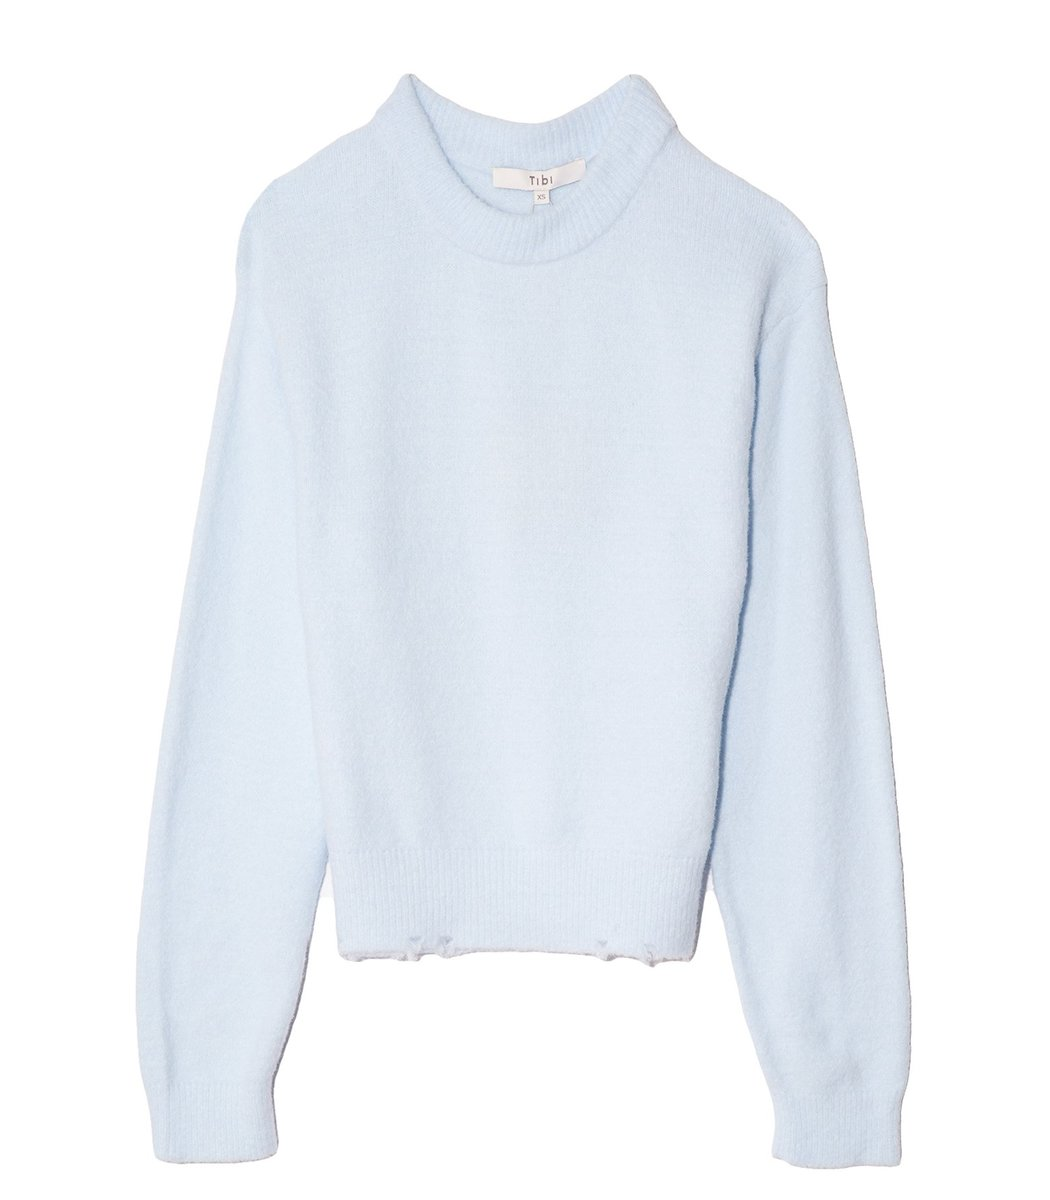 Tibi Fondue Crewneck Sweater in Sky Blue